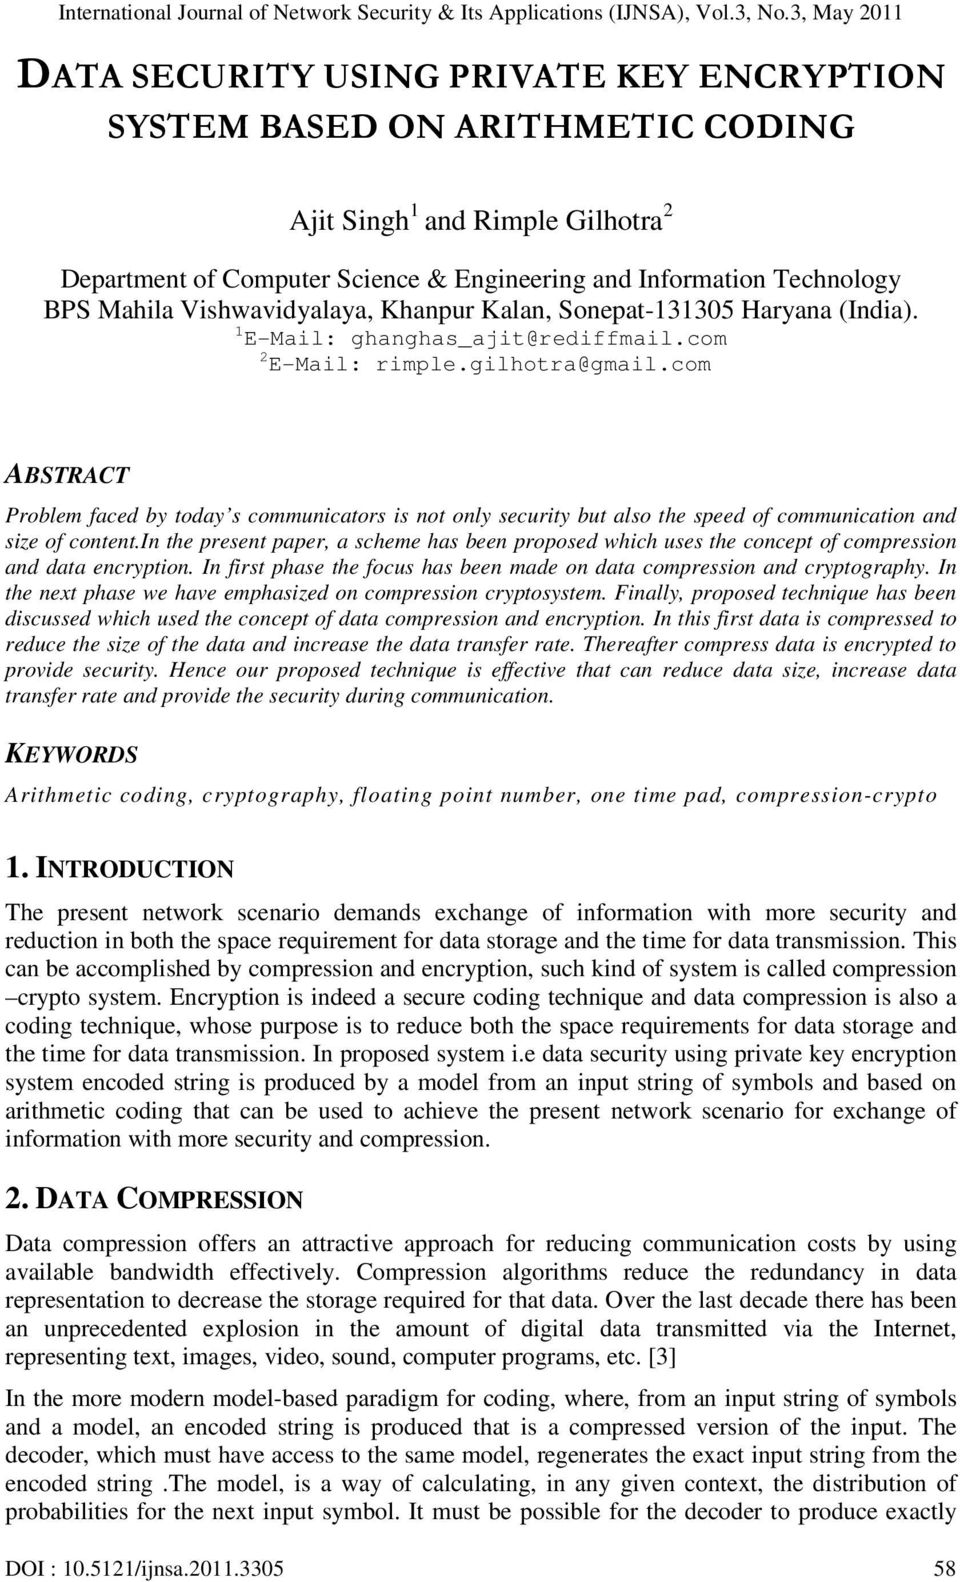 DATA SECURITY USING PRIVATE KEY ENCRYPTION SYSTEM BASED ON